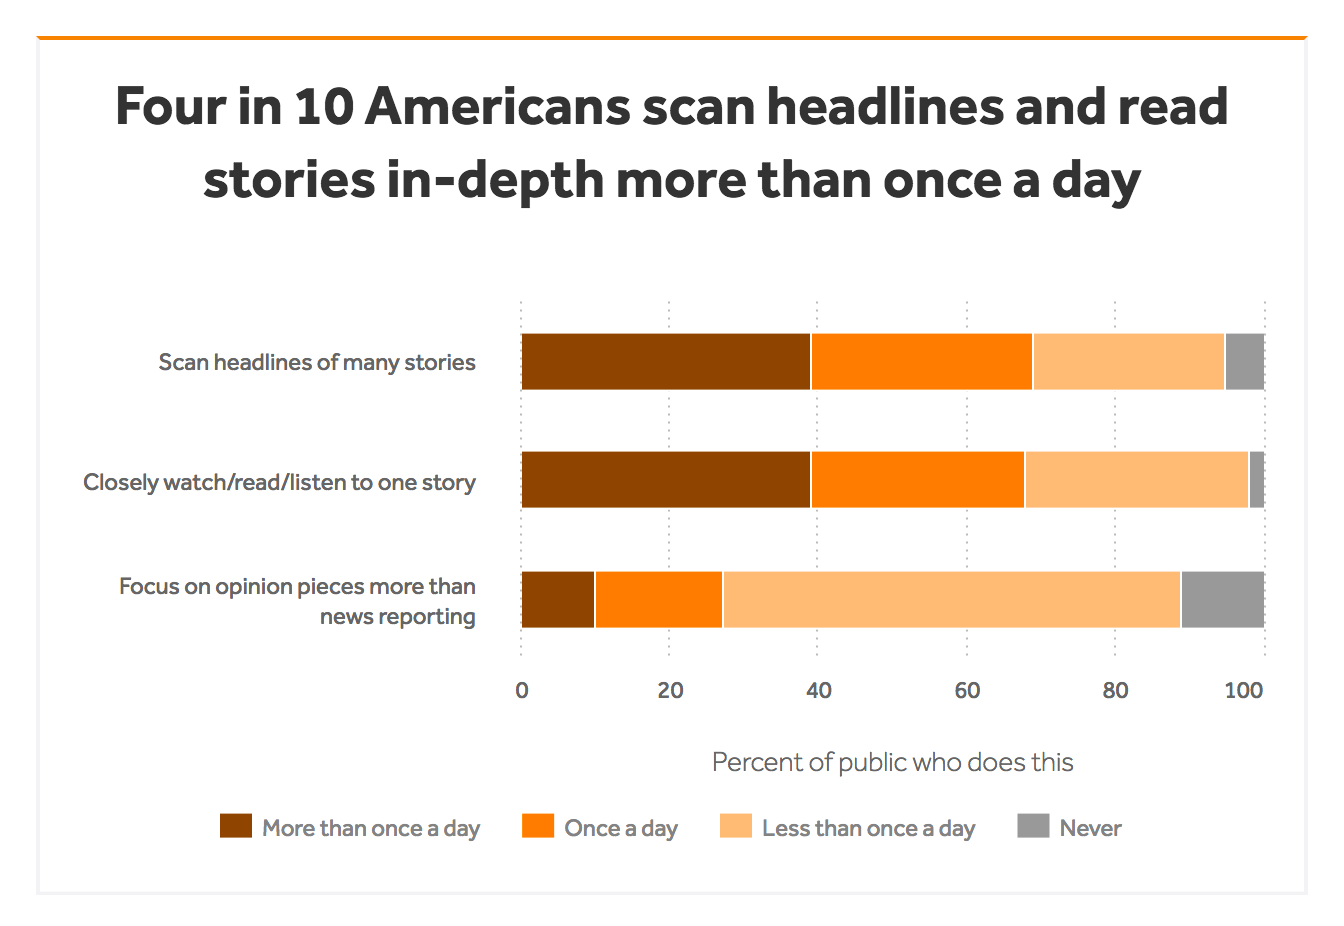 """Data Source: Question: """"Everyone has a different way of consuming news. How often do you do each of the following?"""" Study: """"Americans and the News Media,"""" 2018."""